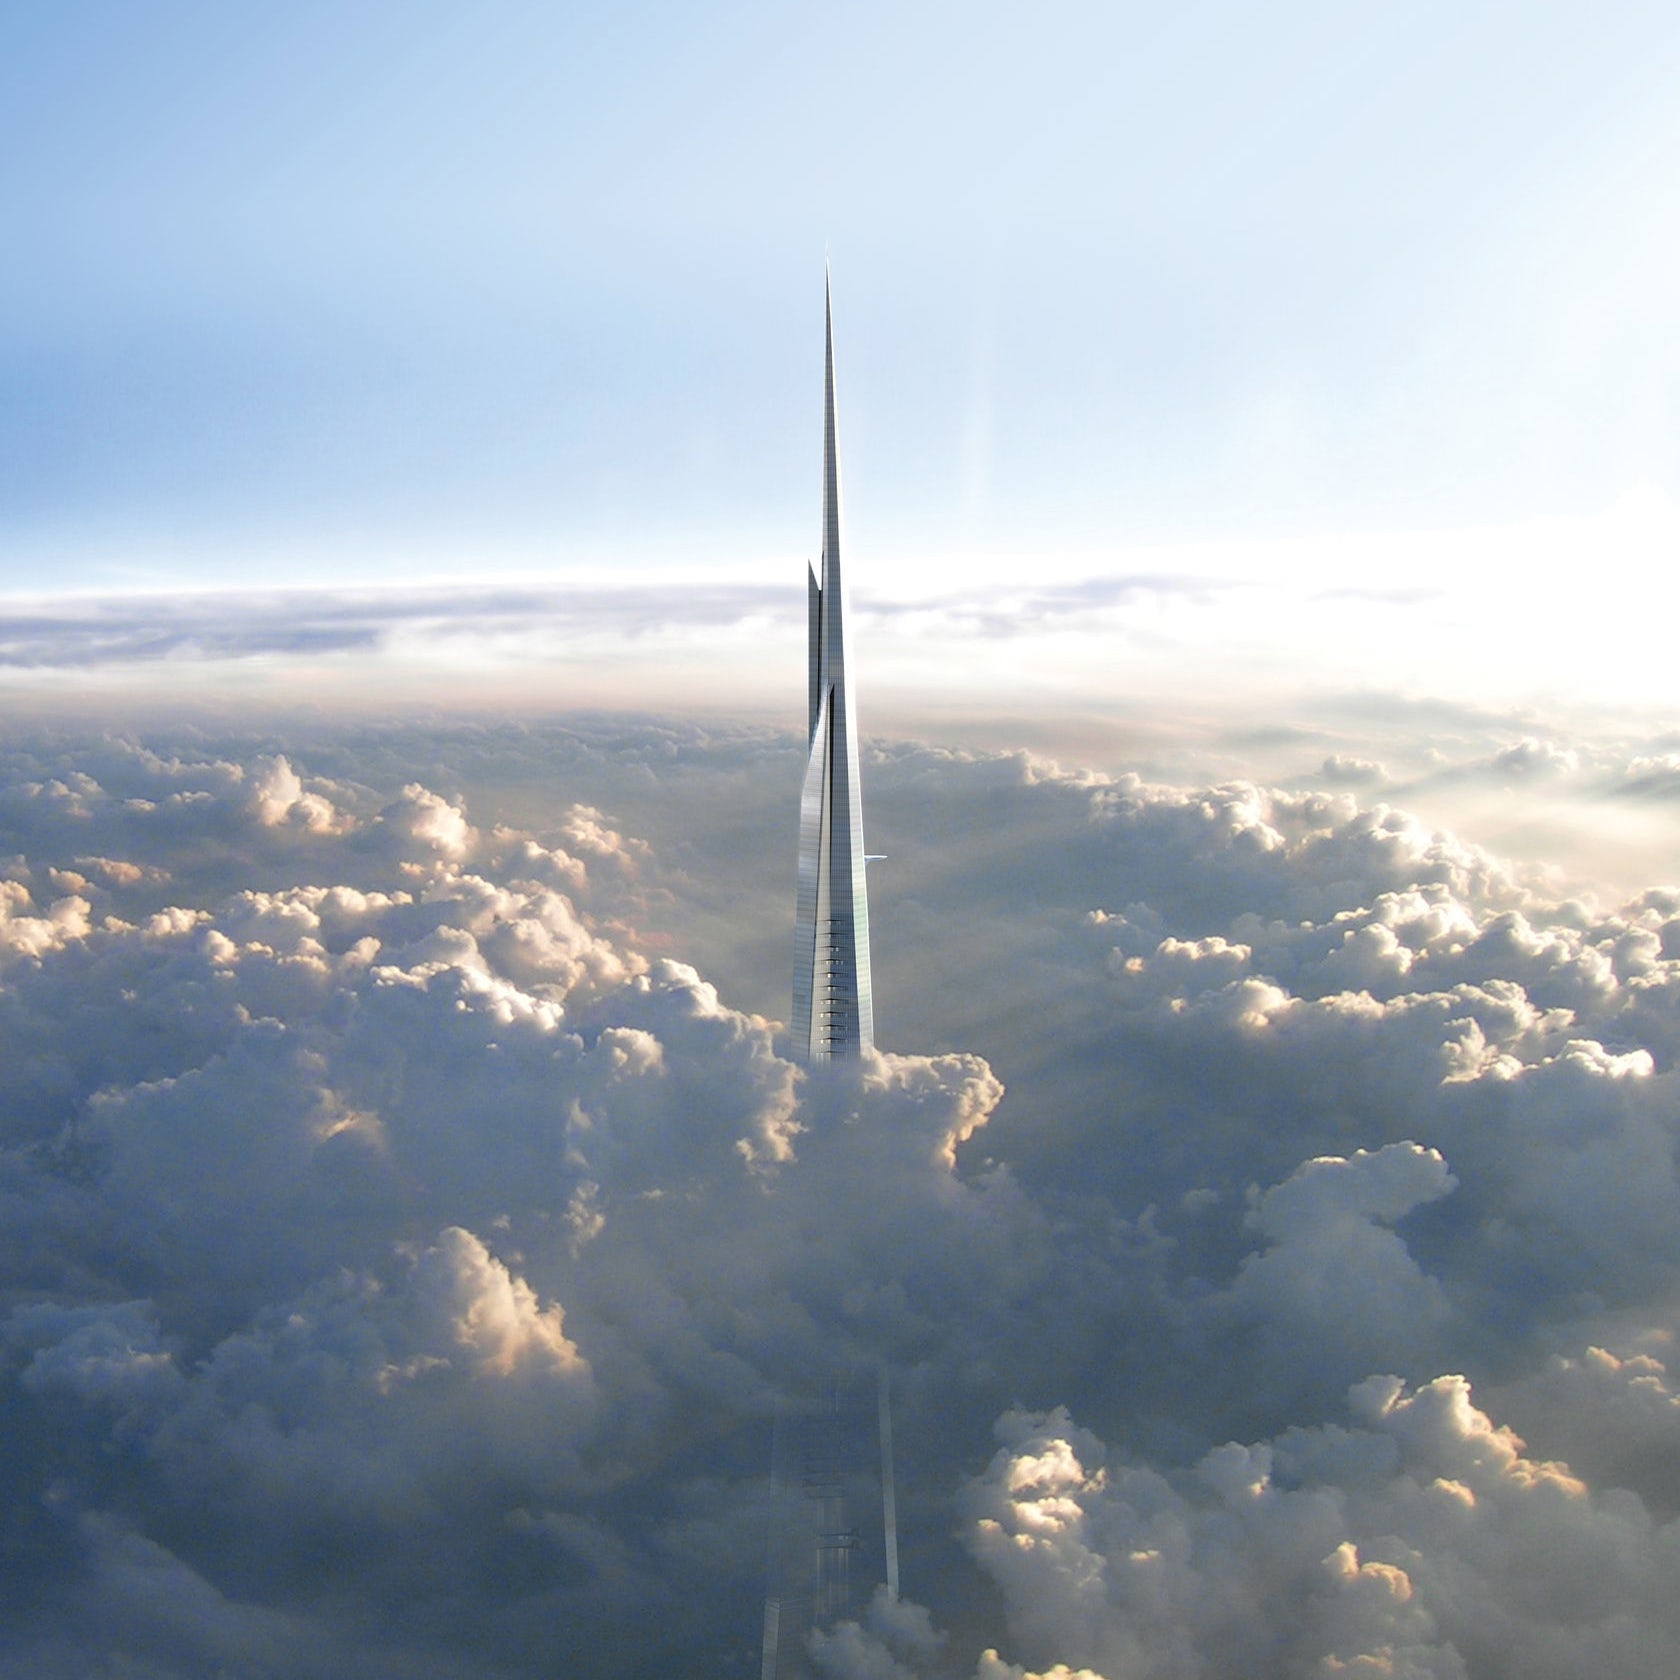 10 Facts About Jeddah Tower, the Soon-To-Be Tallest Building in the World